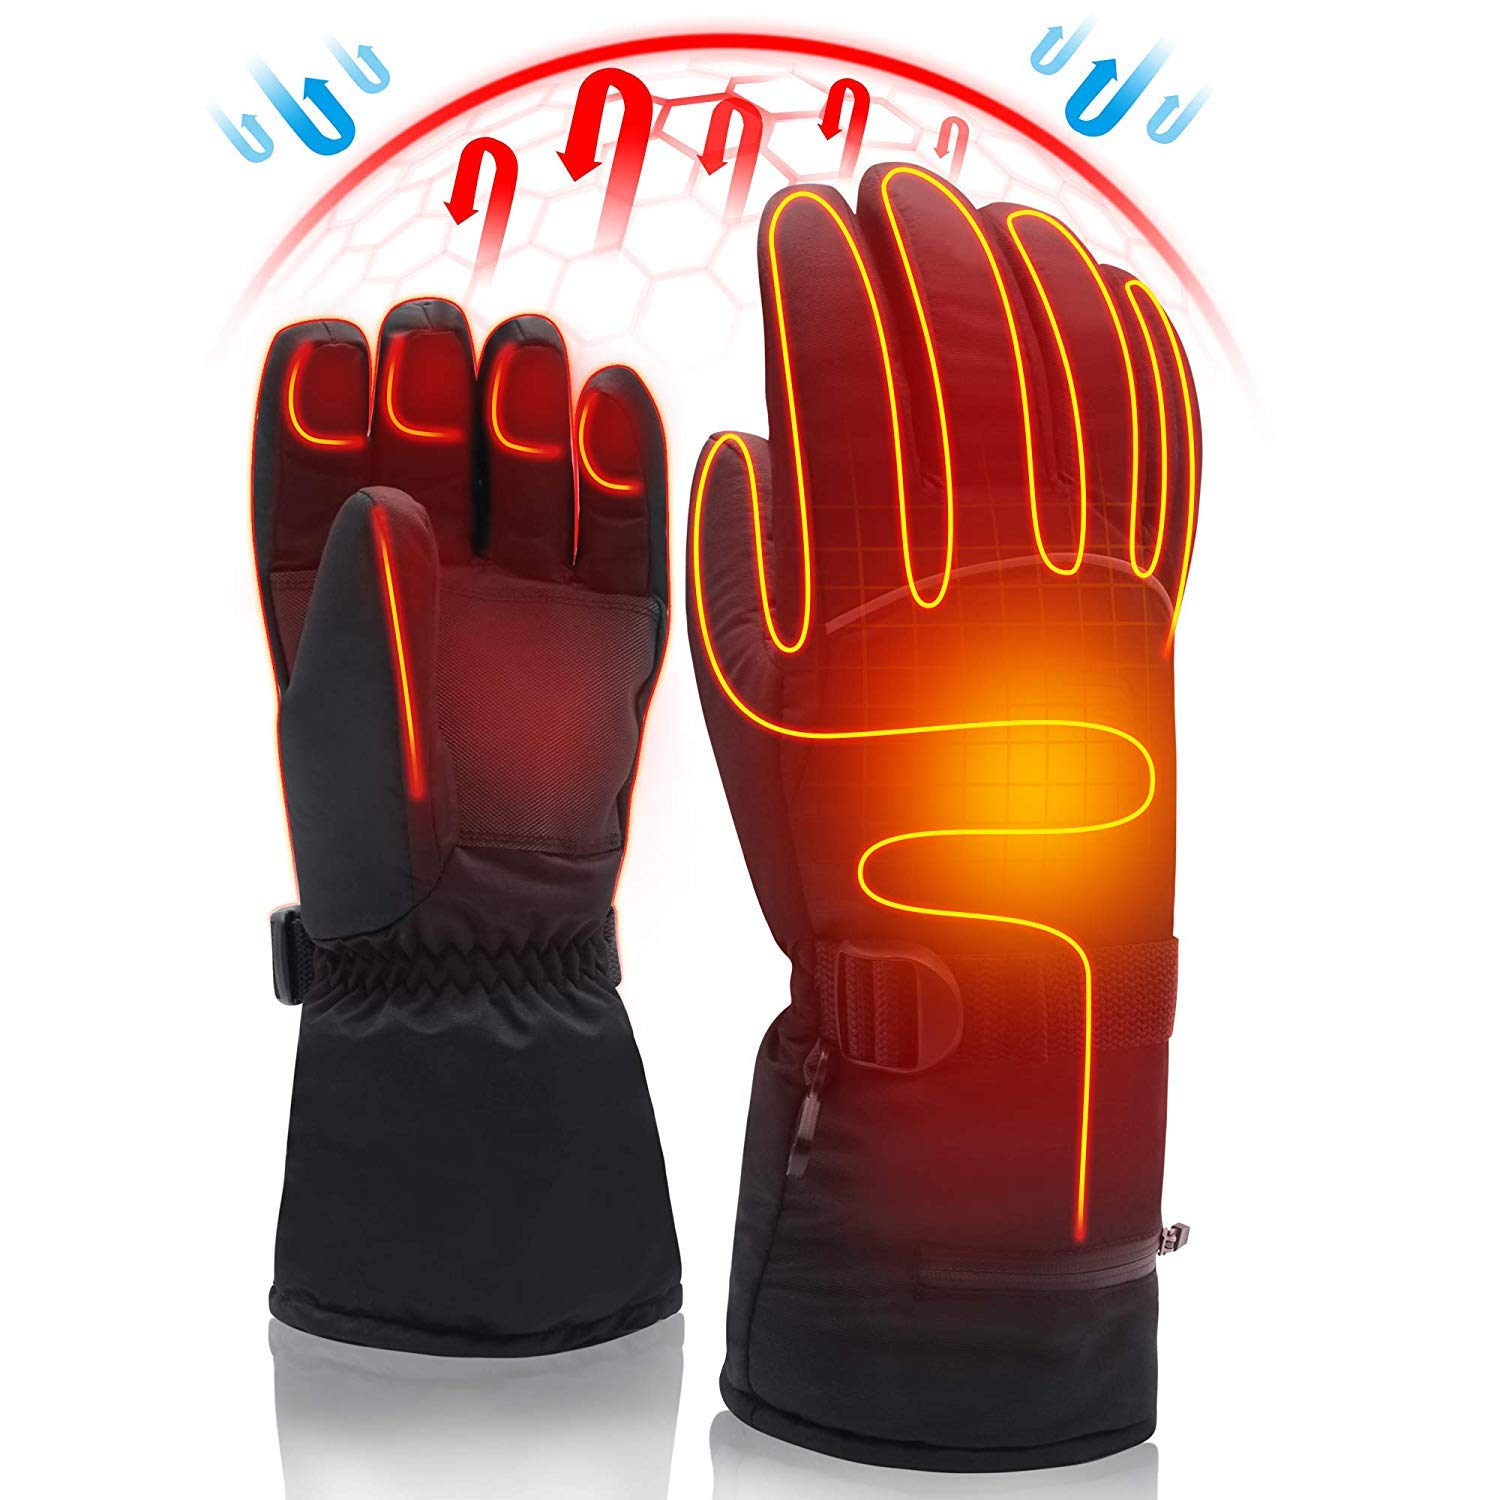 Electric Rechargeable Battery Heated Gloves,Cold Weather Thermal Heat Gloves Mittens,Sport Outdoor Warm Winter Heated Gloves,Cycle Motorcycle Drive Camp Hike Ski Heated Handwarmer (7.4V Gloves-L) by SVPRO